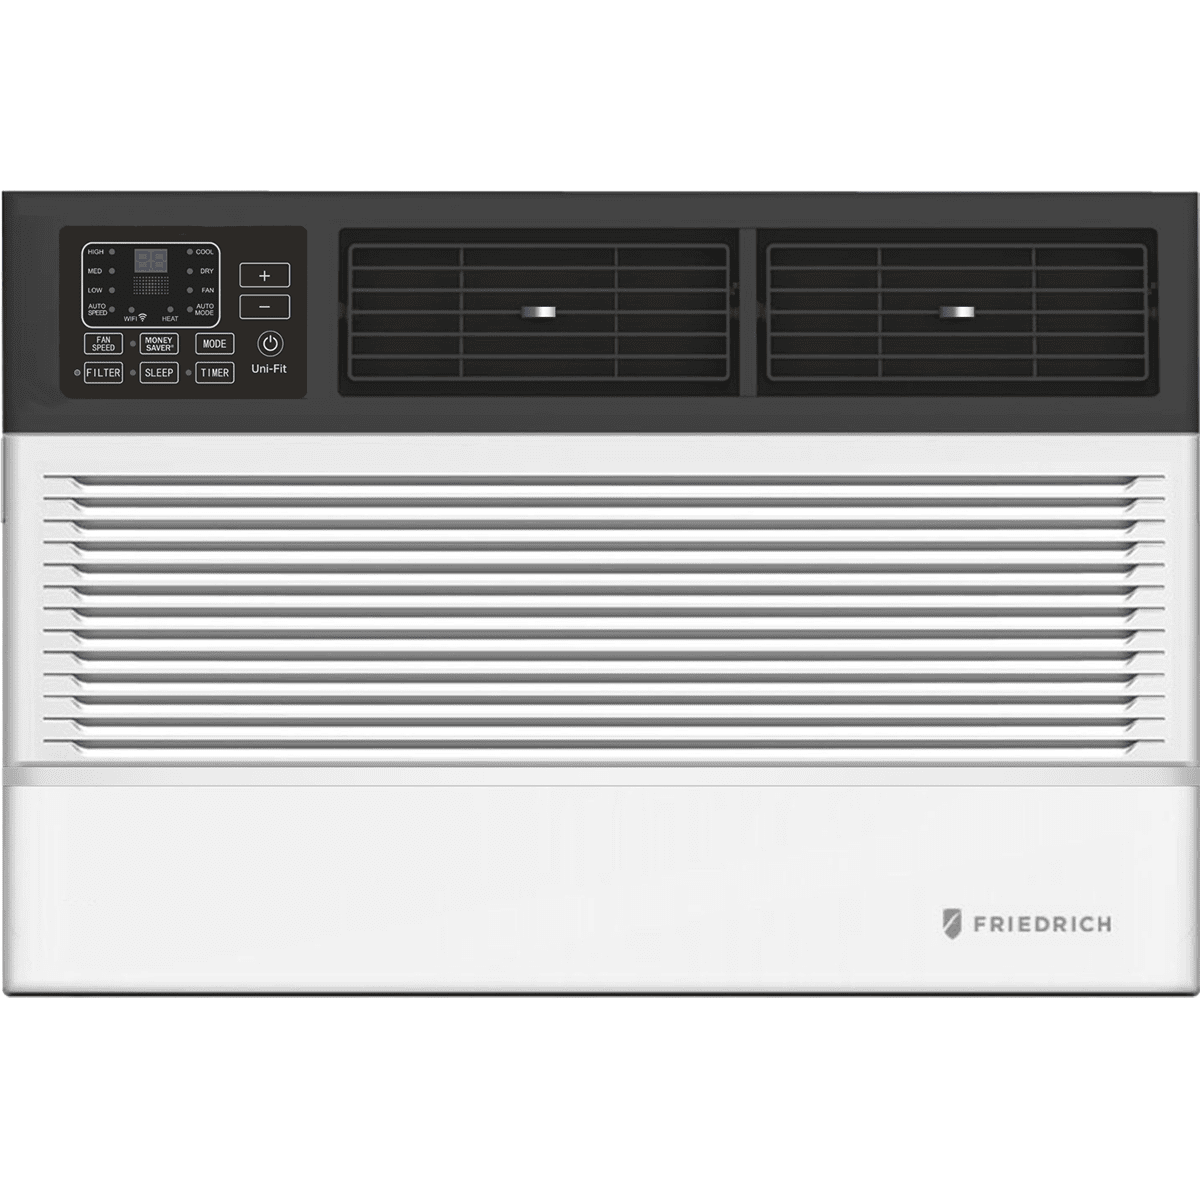 Friedrich Uni-Fit 12,000 BTU Thru-the-Wall AC